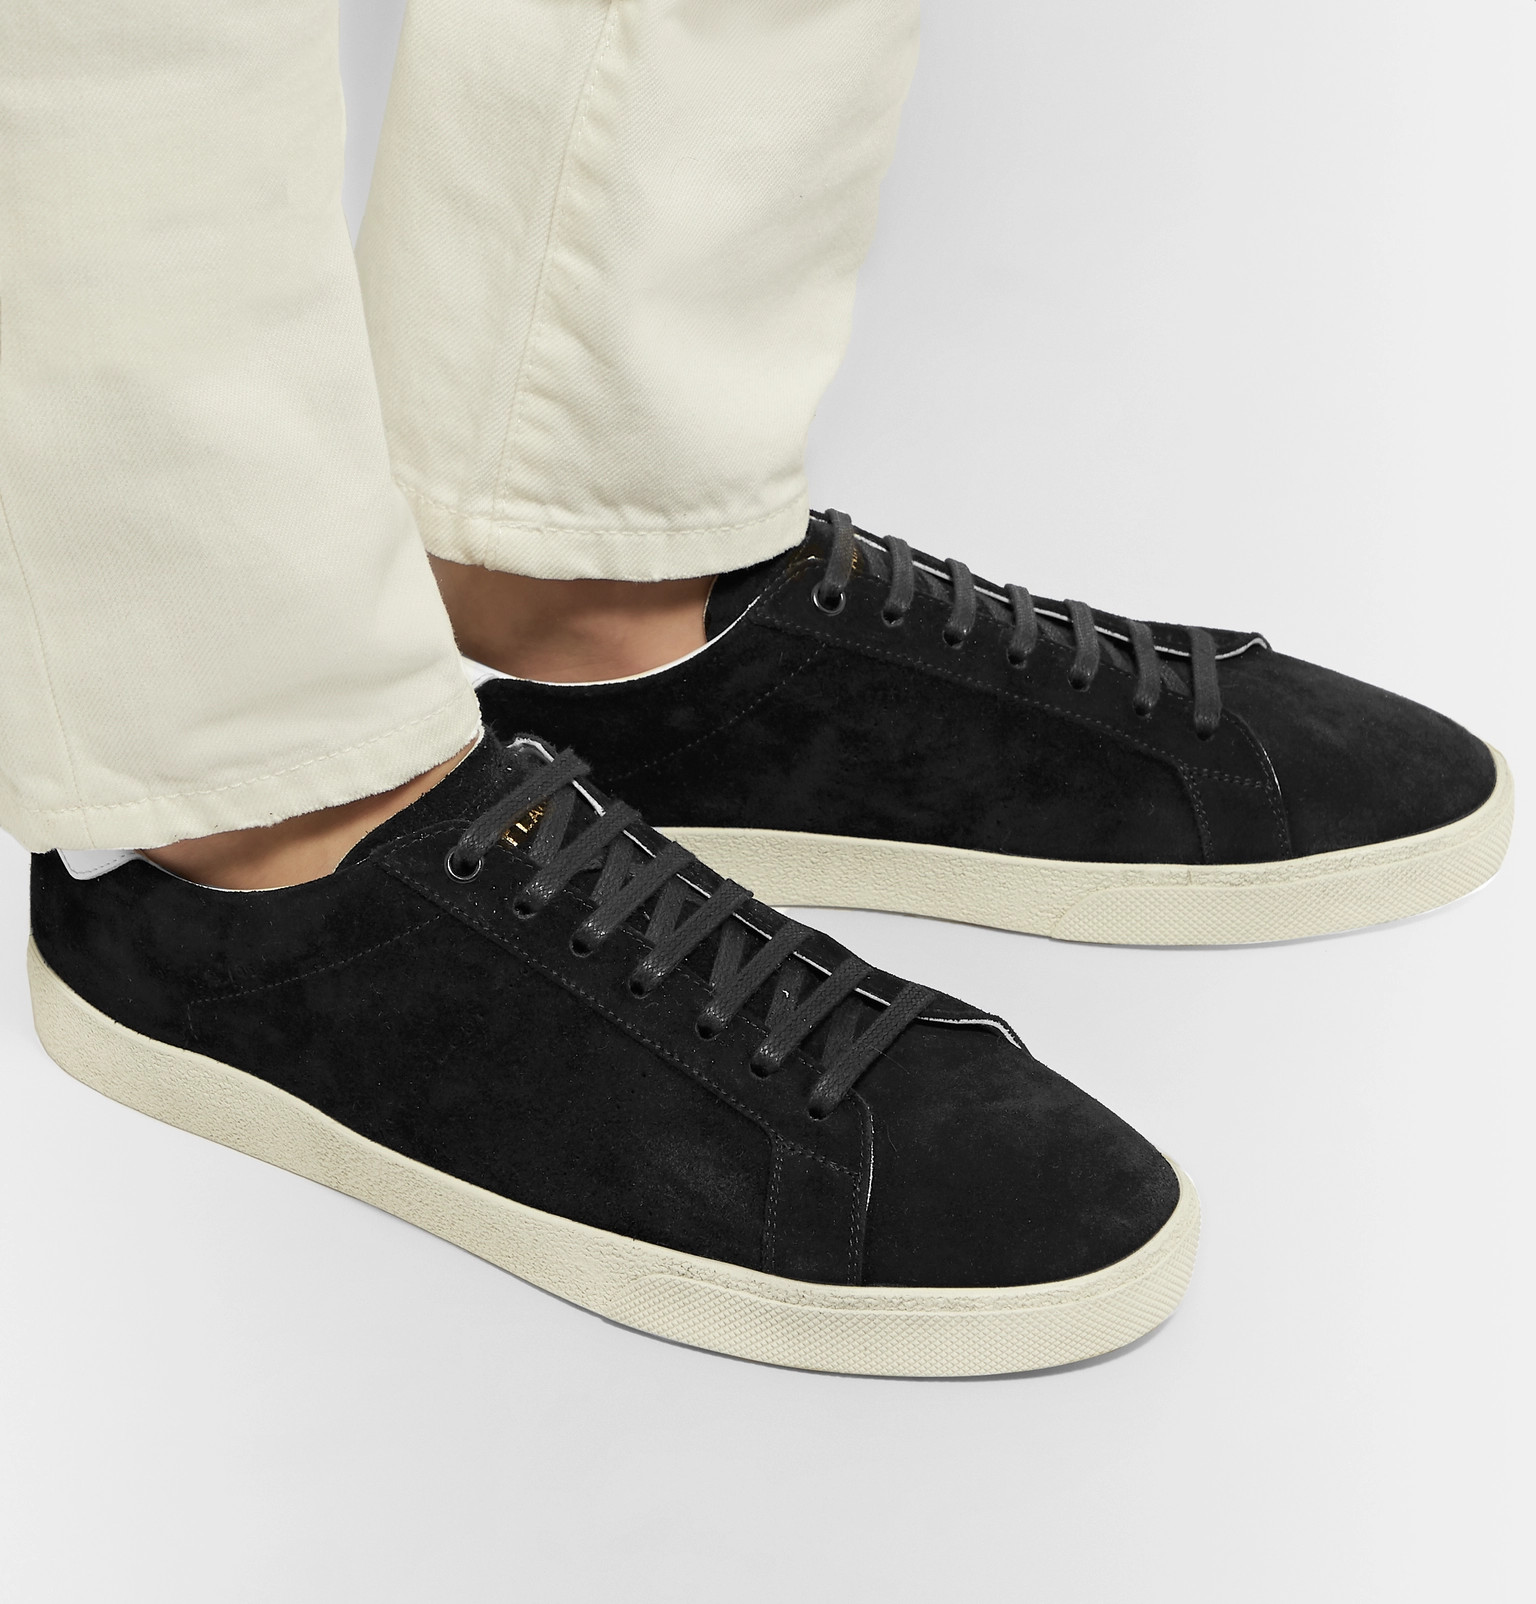 695fb2bc421 SAINT LAURENT - SL/06 Court Classic Leather-Trimmed Suede Sneakers